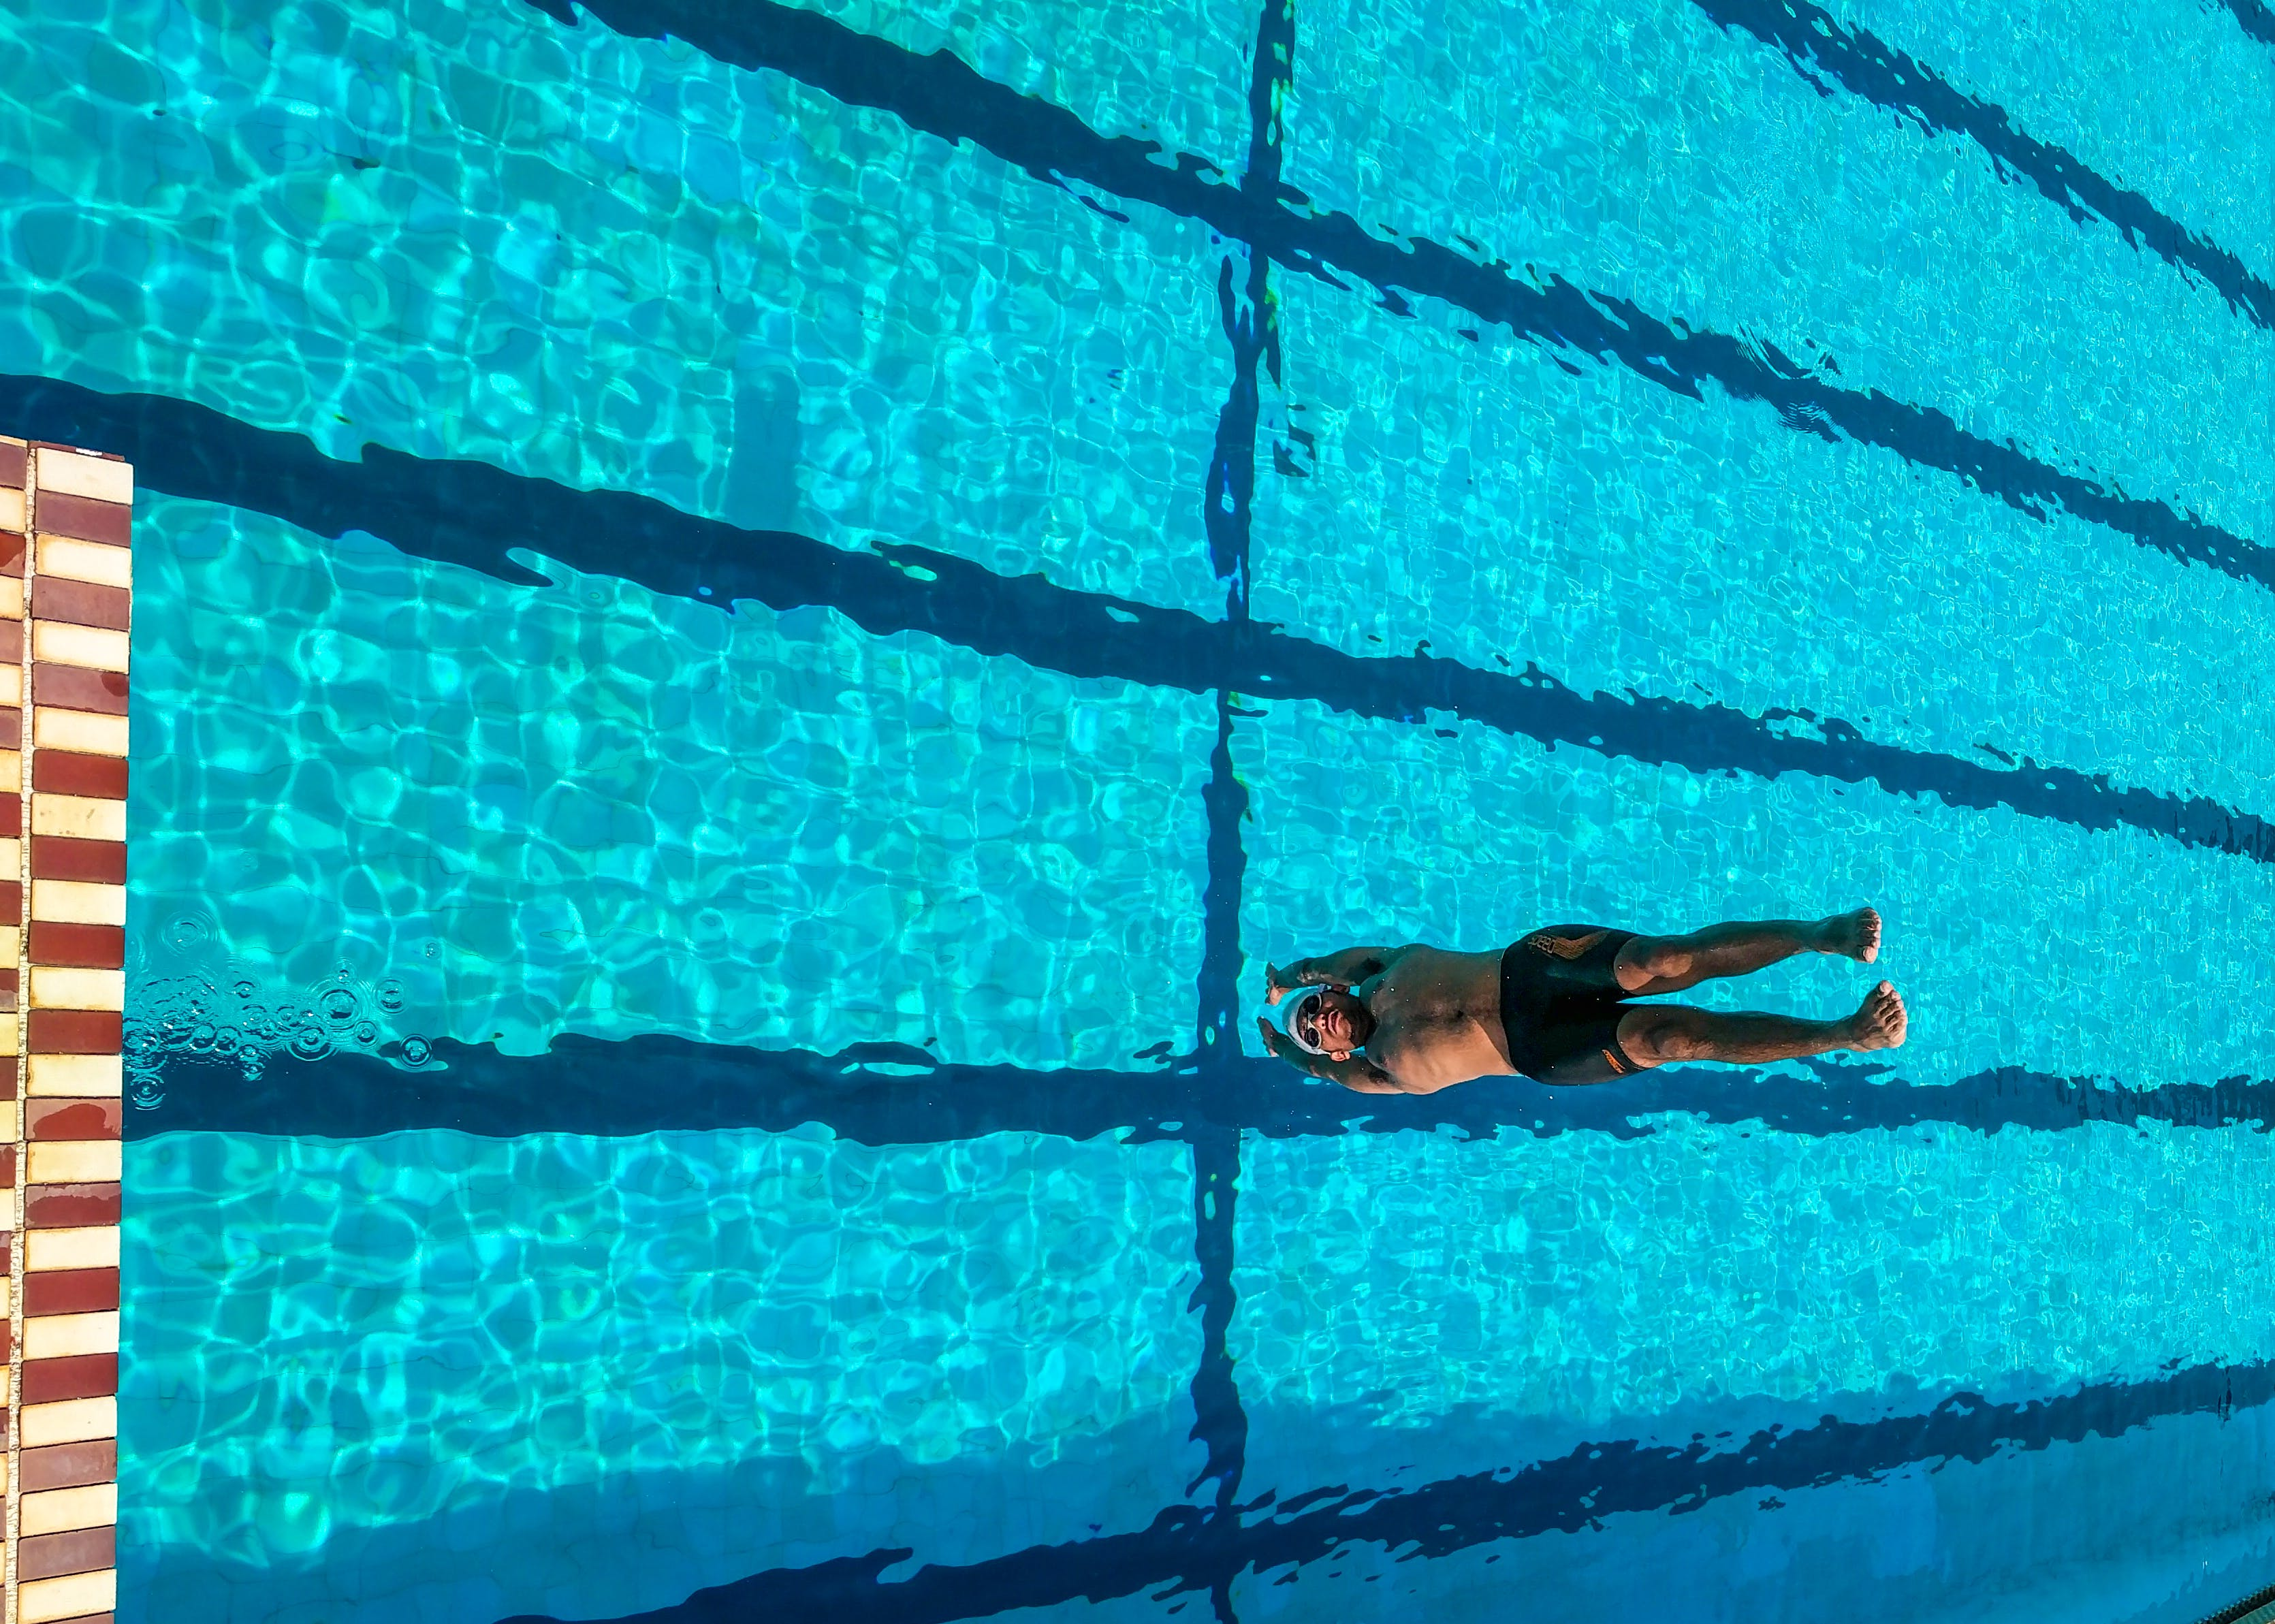 Person Diving on Swimming Pool